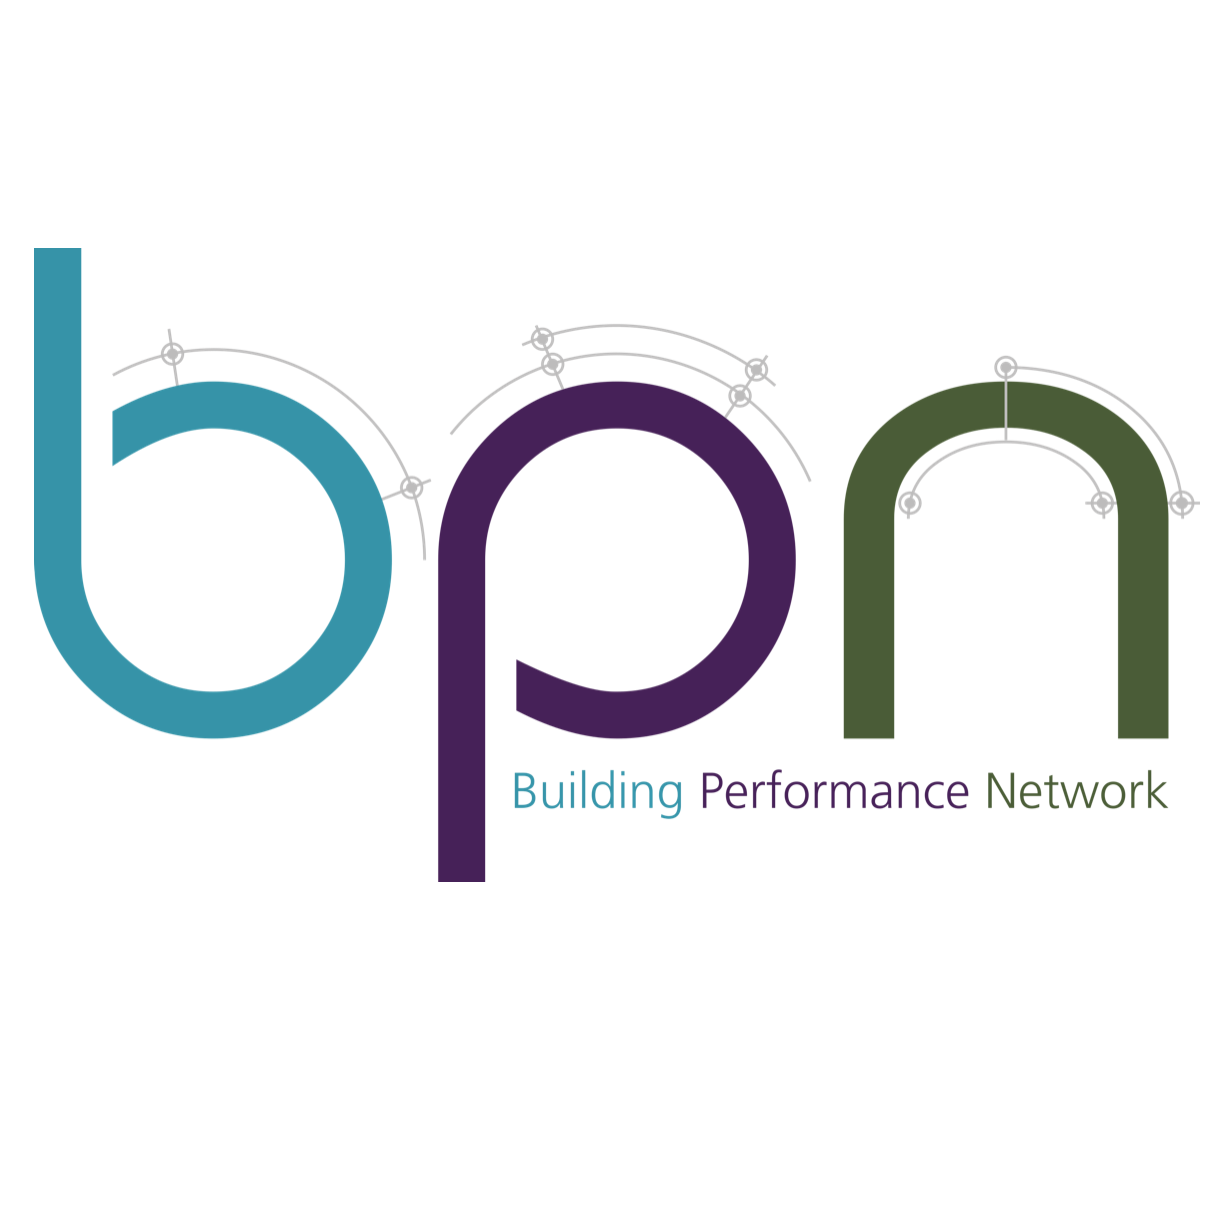 British Standard for Building Performance Evaluation